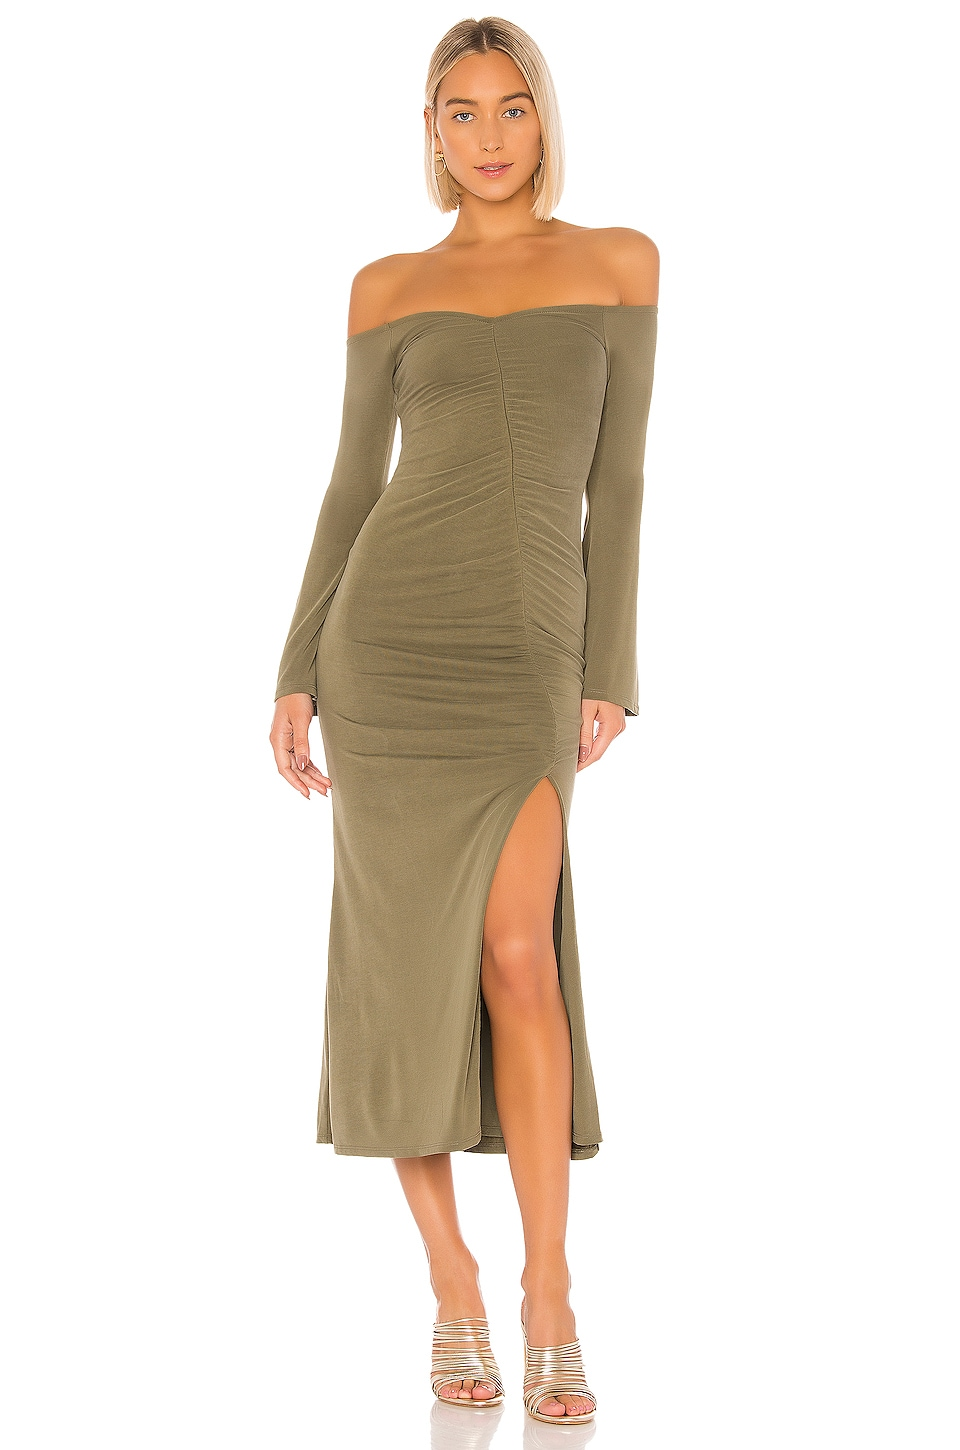 House of Harlow 1960 X REVOLVE Maccoy Midi Dress in Olive Green